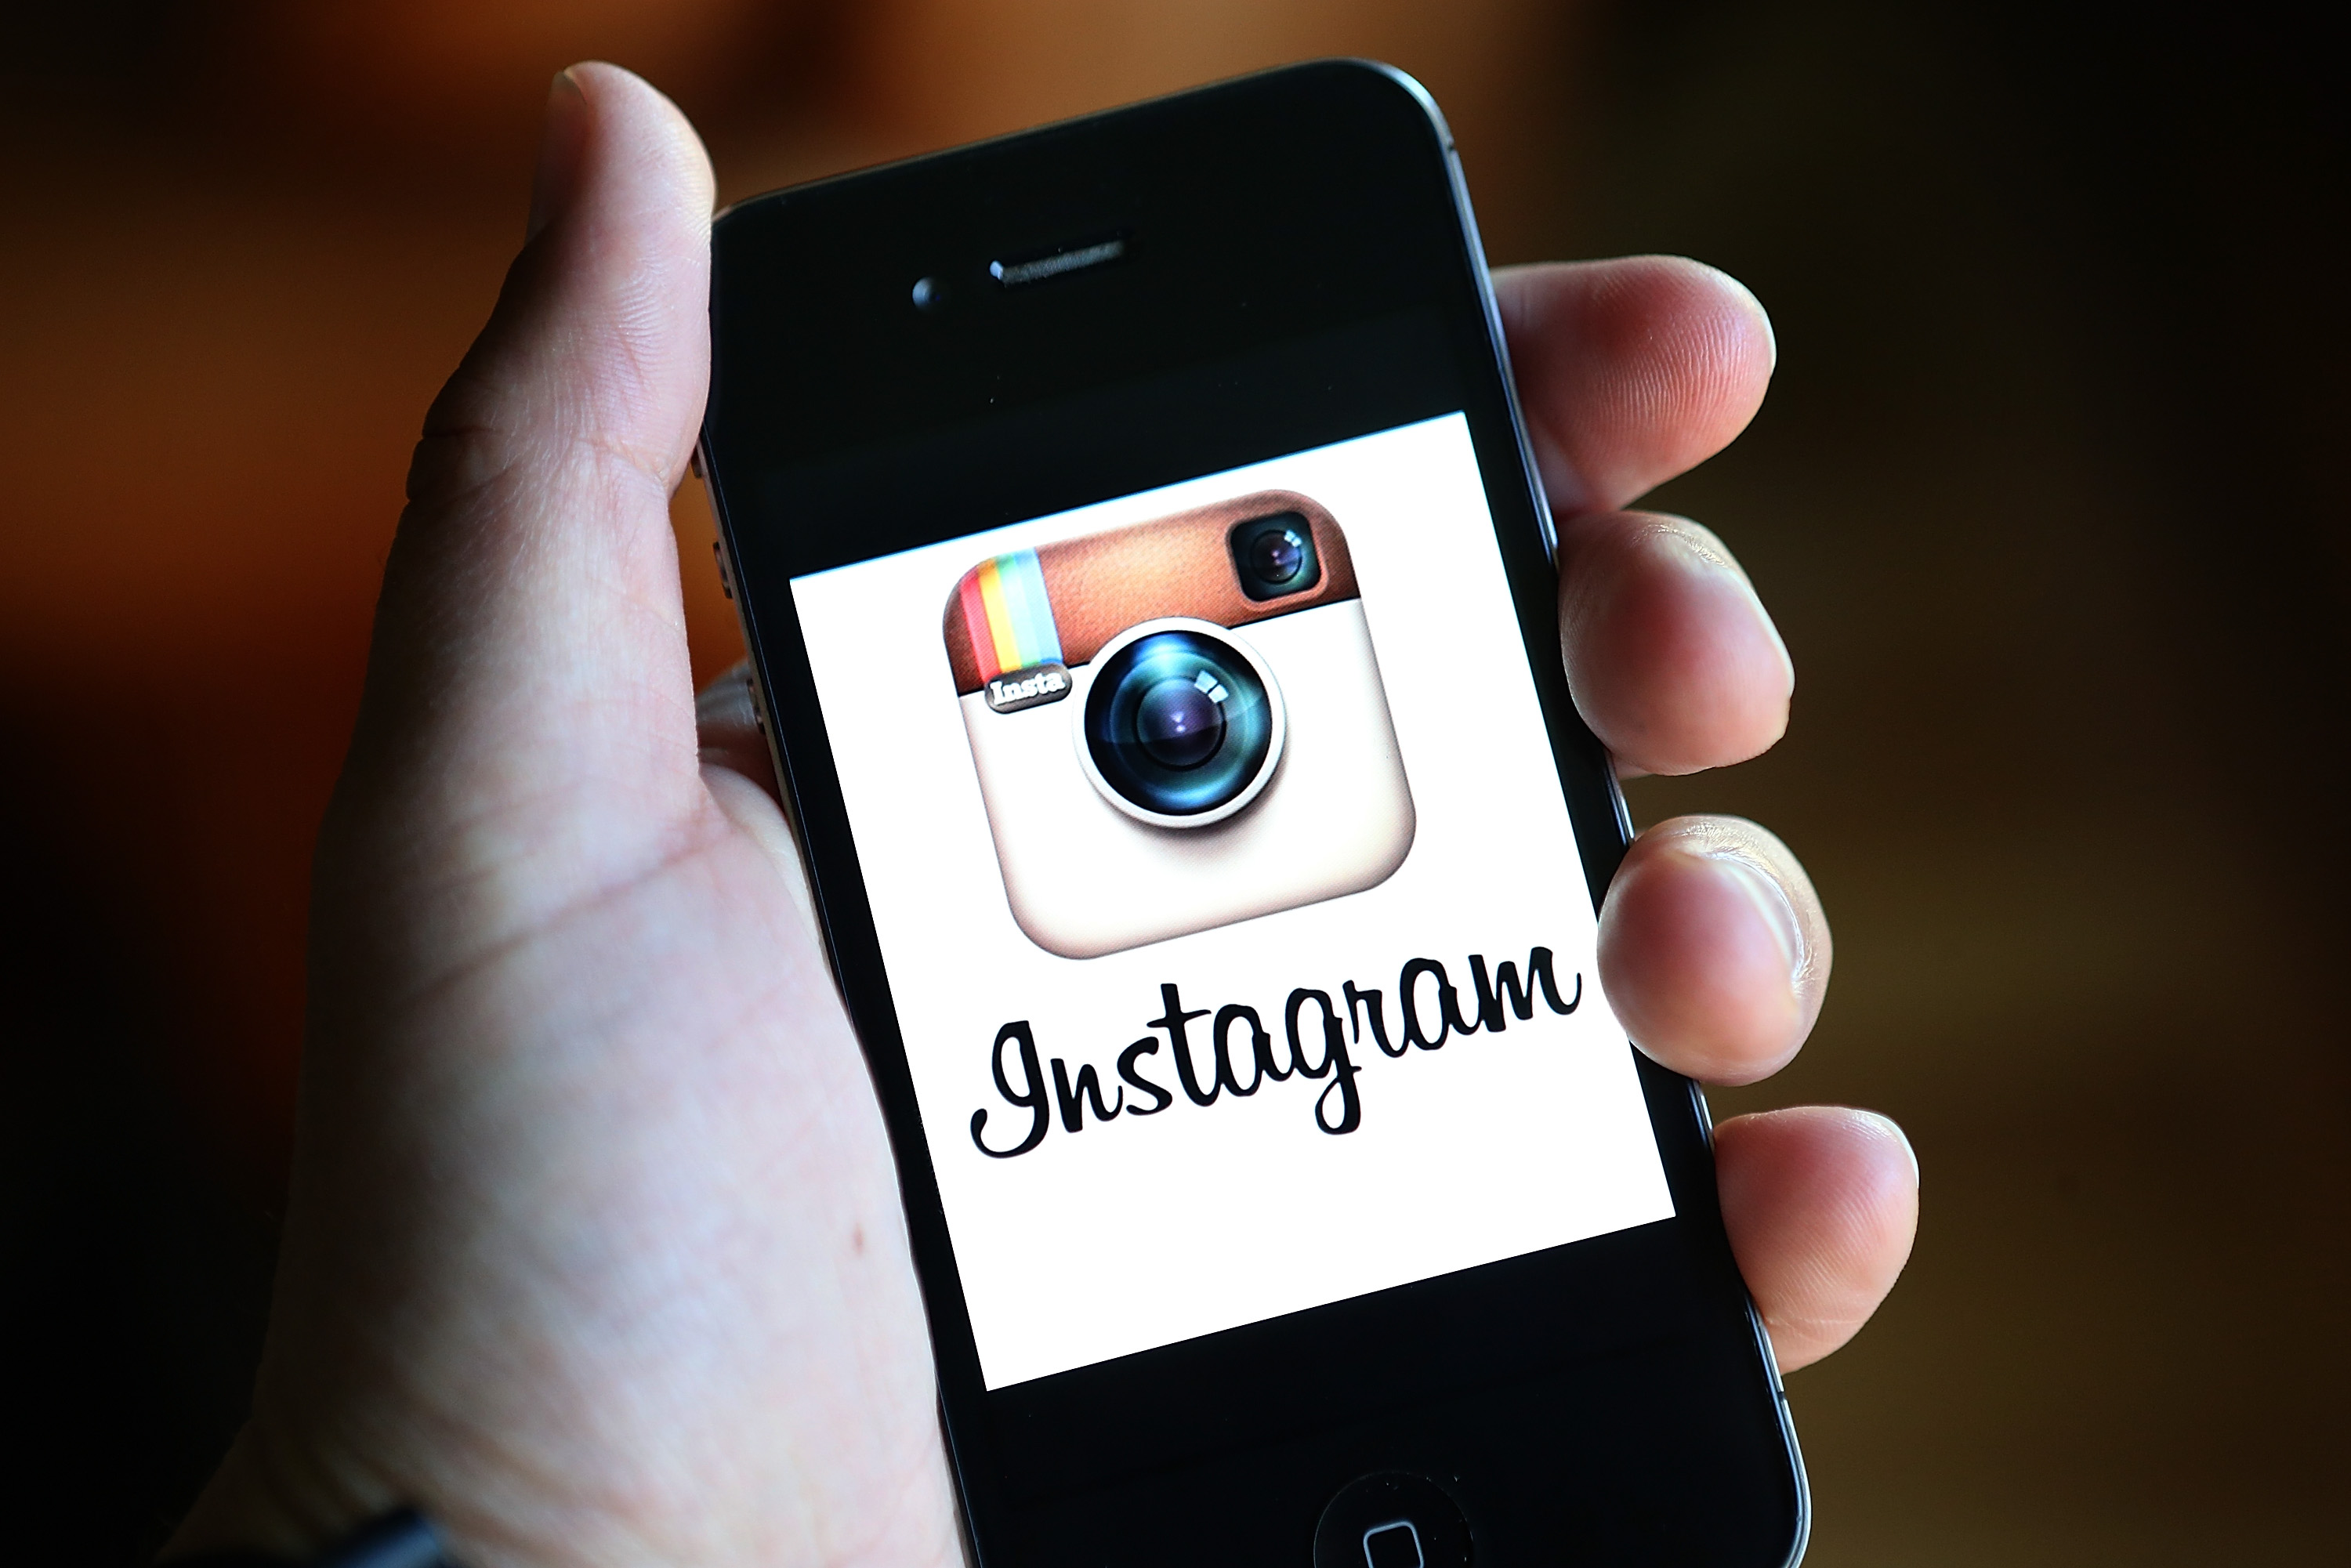 How to enable private account in instagram on your iPhone or iPad